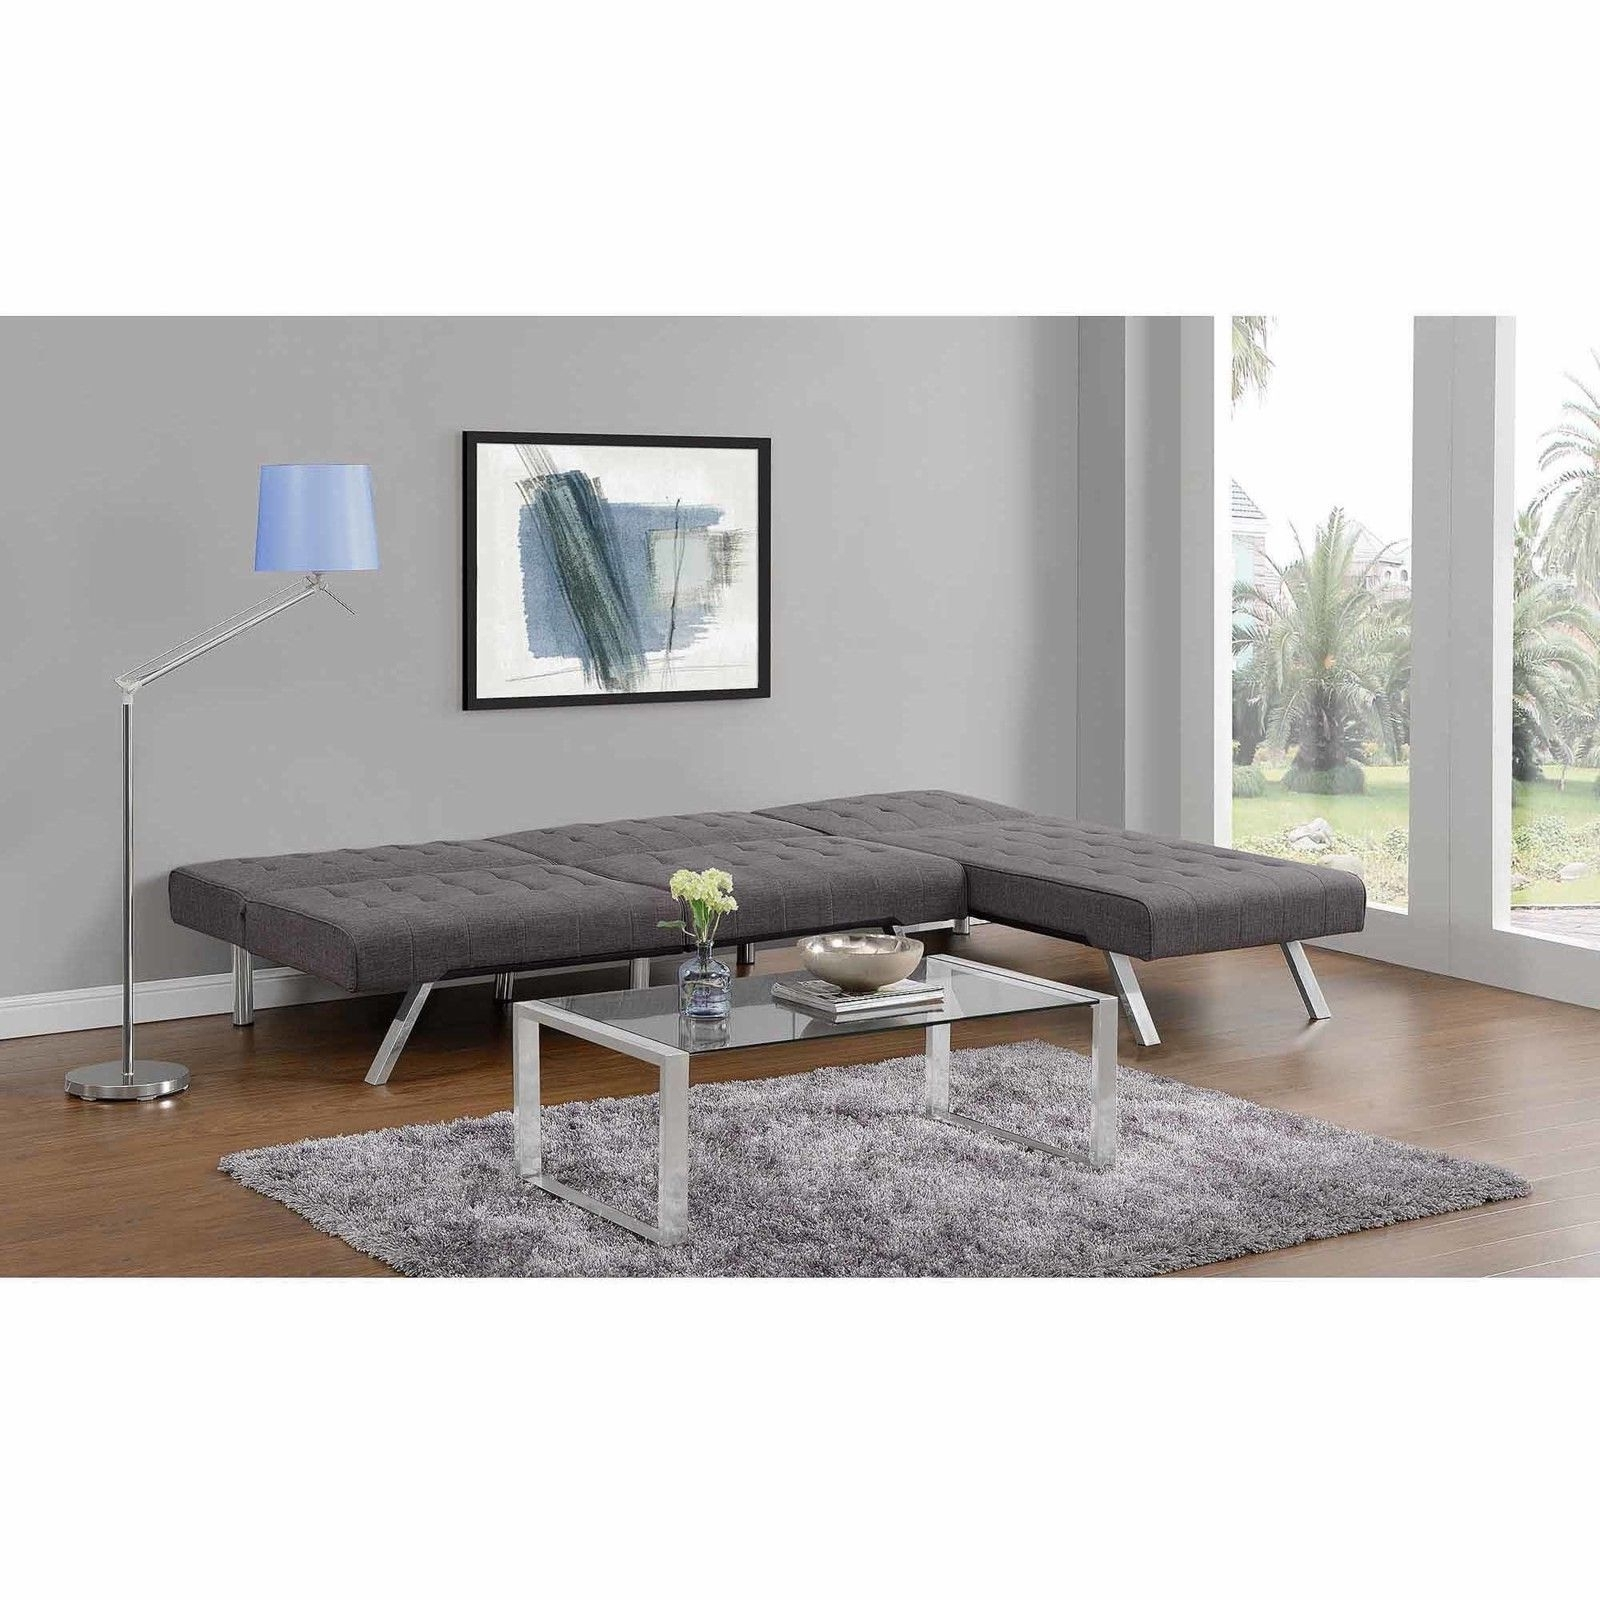 Dhp Emily Linen Chaise Lounger Gray Chair 2024429  (View 2 of 15)